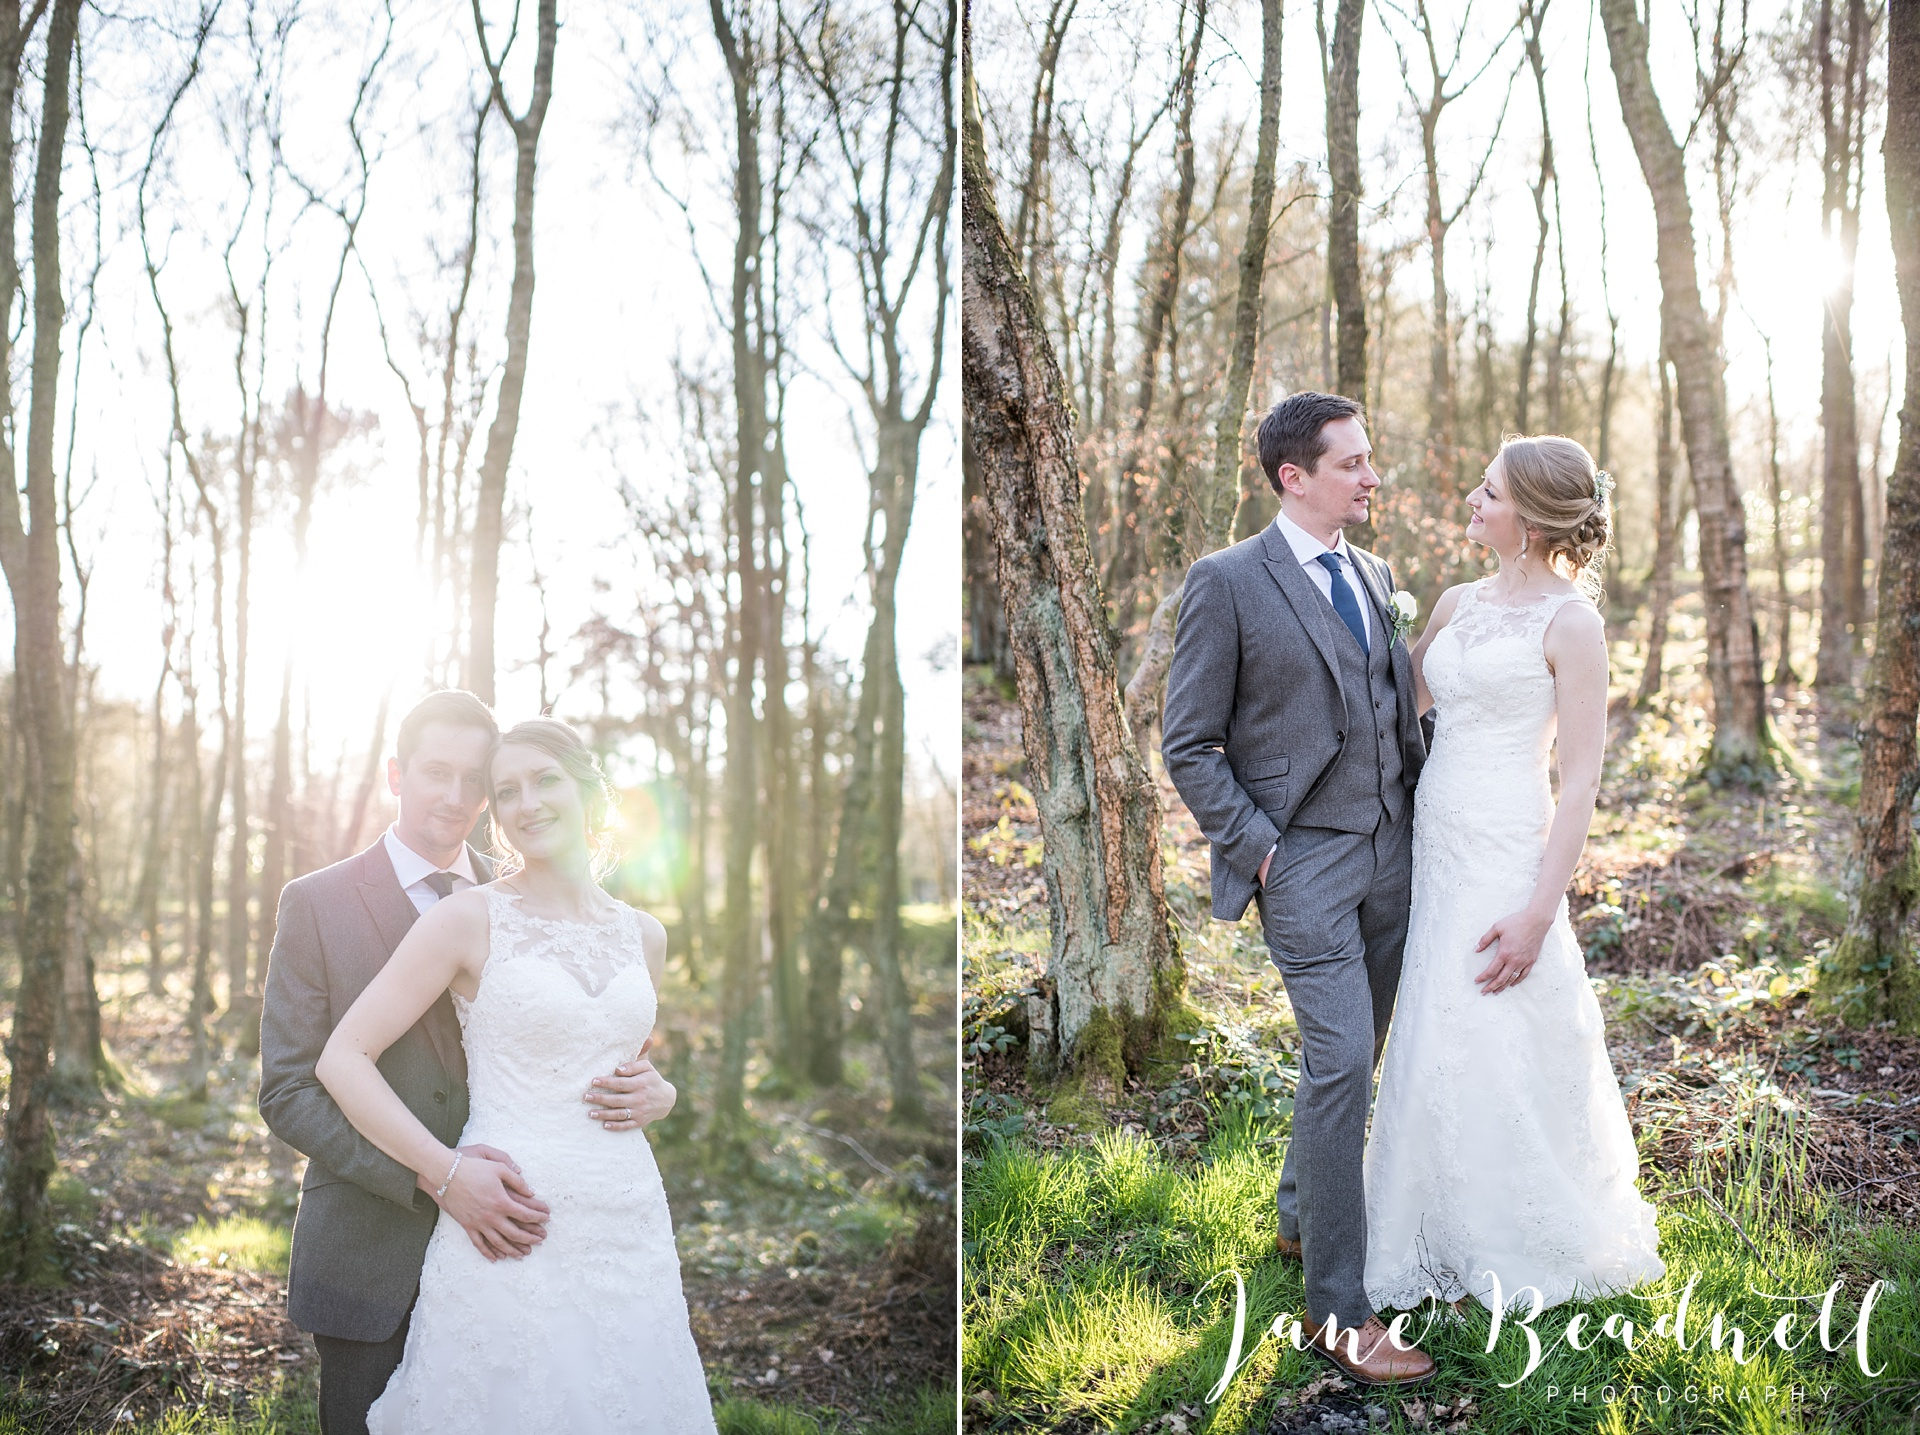 Otley Chevin Lodge wedding photography by Jane Beadnell Photography Leeds_0122